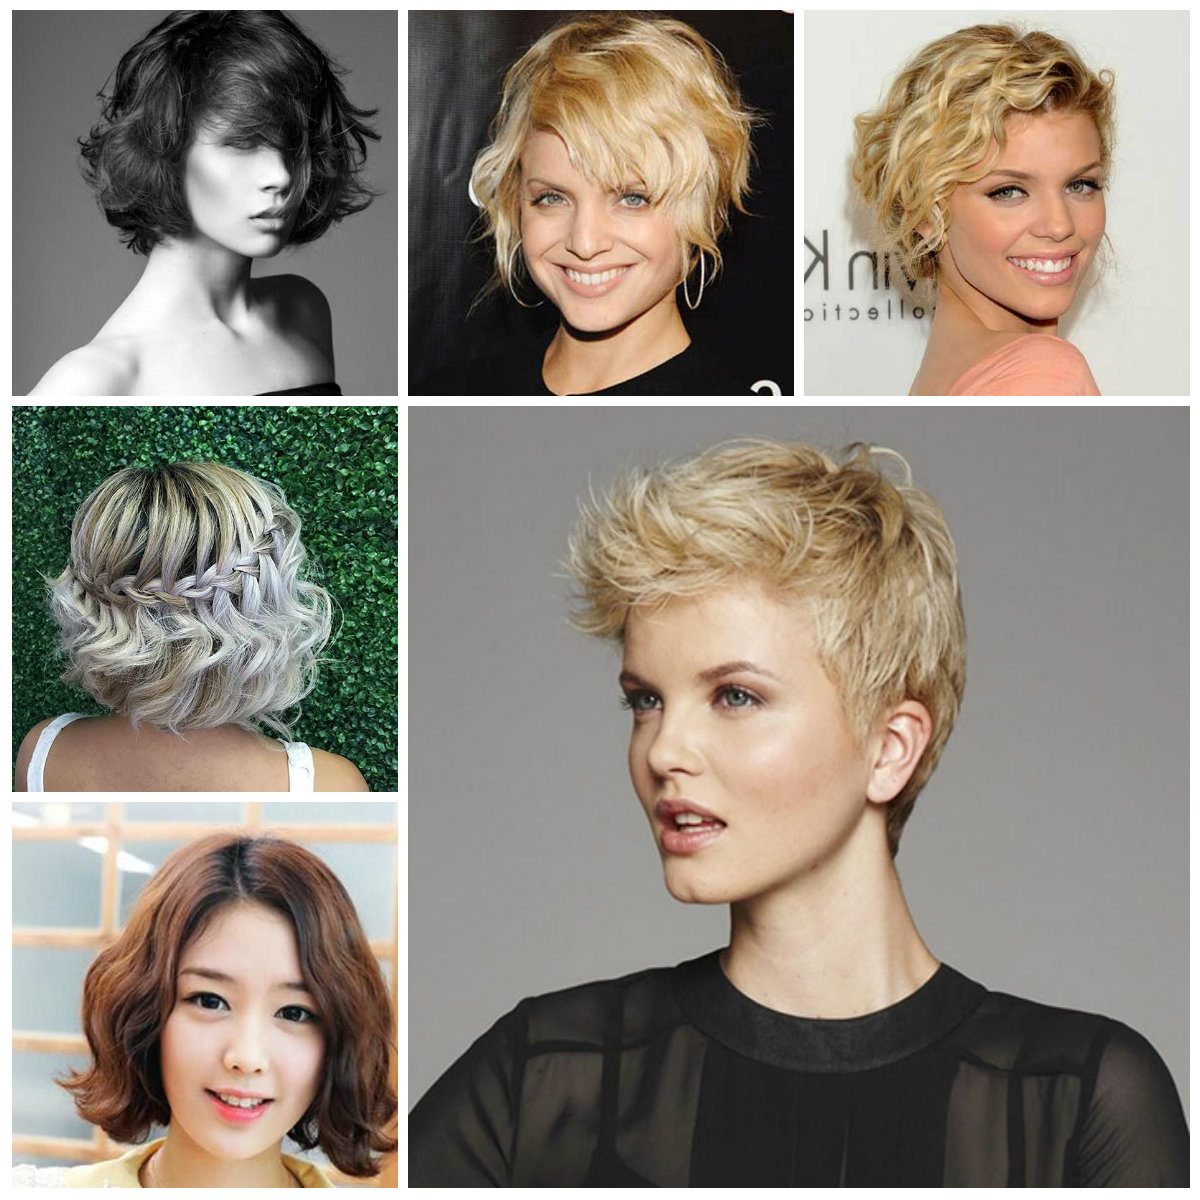 2019 Haircuts, Hairstyles And Hair Colors With Regard To Latest Ravishing Raven Waves Hairstyles (View 13 of 20)